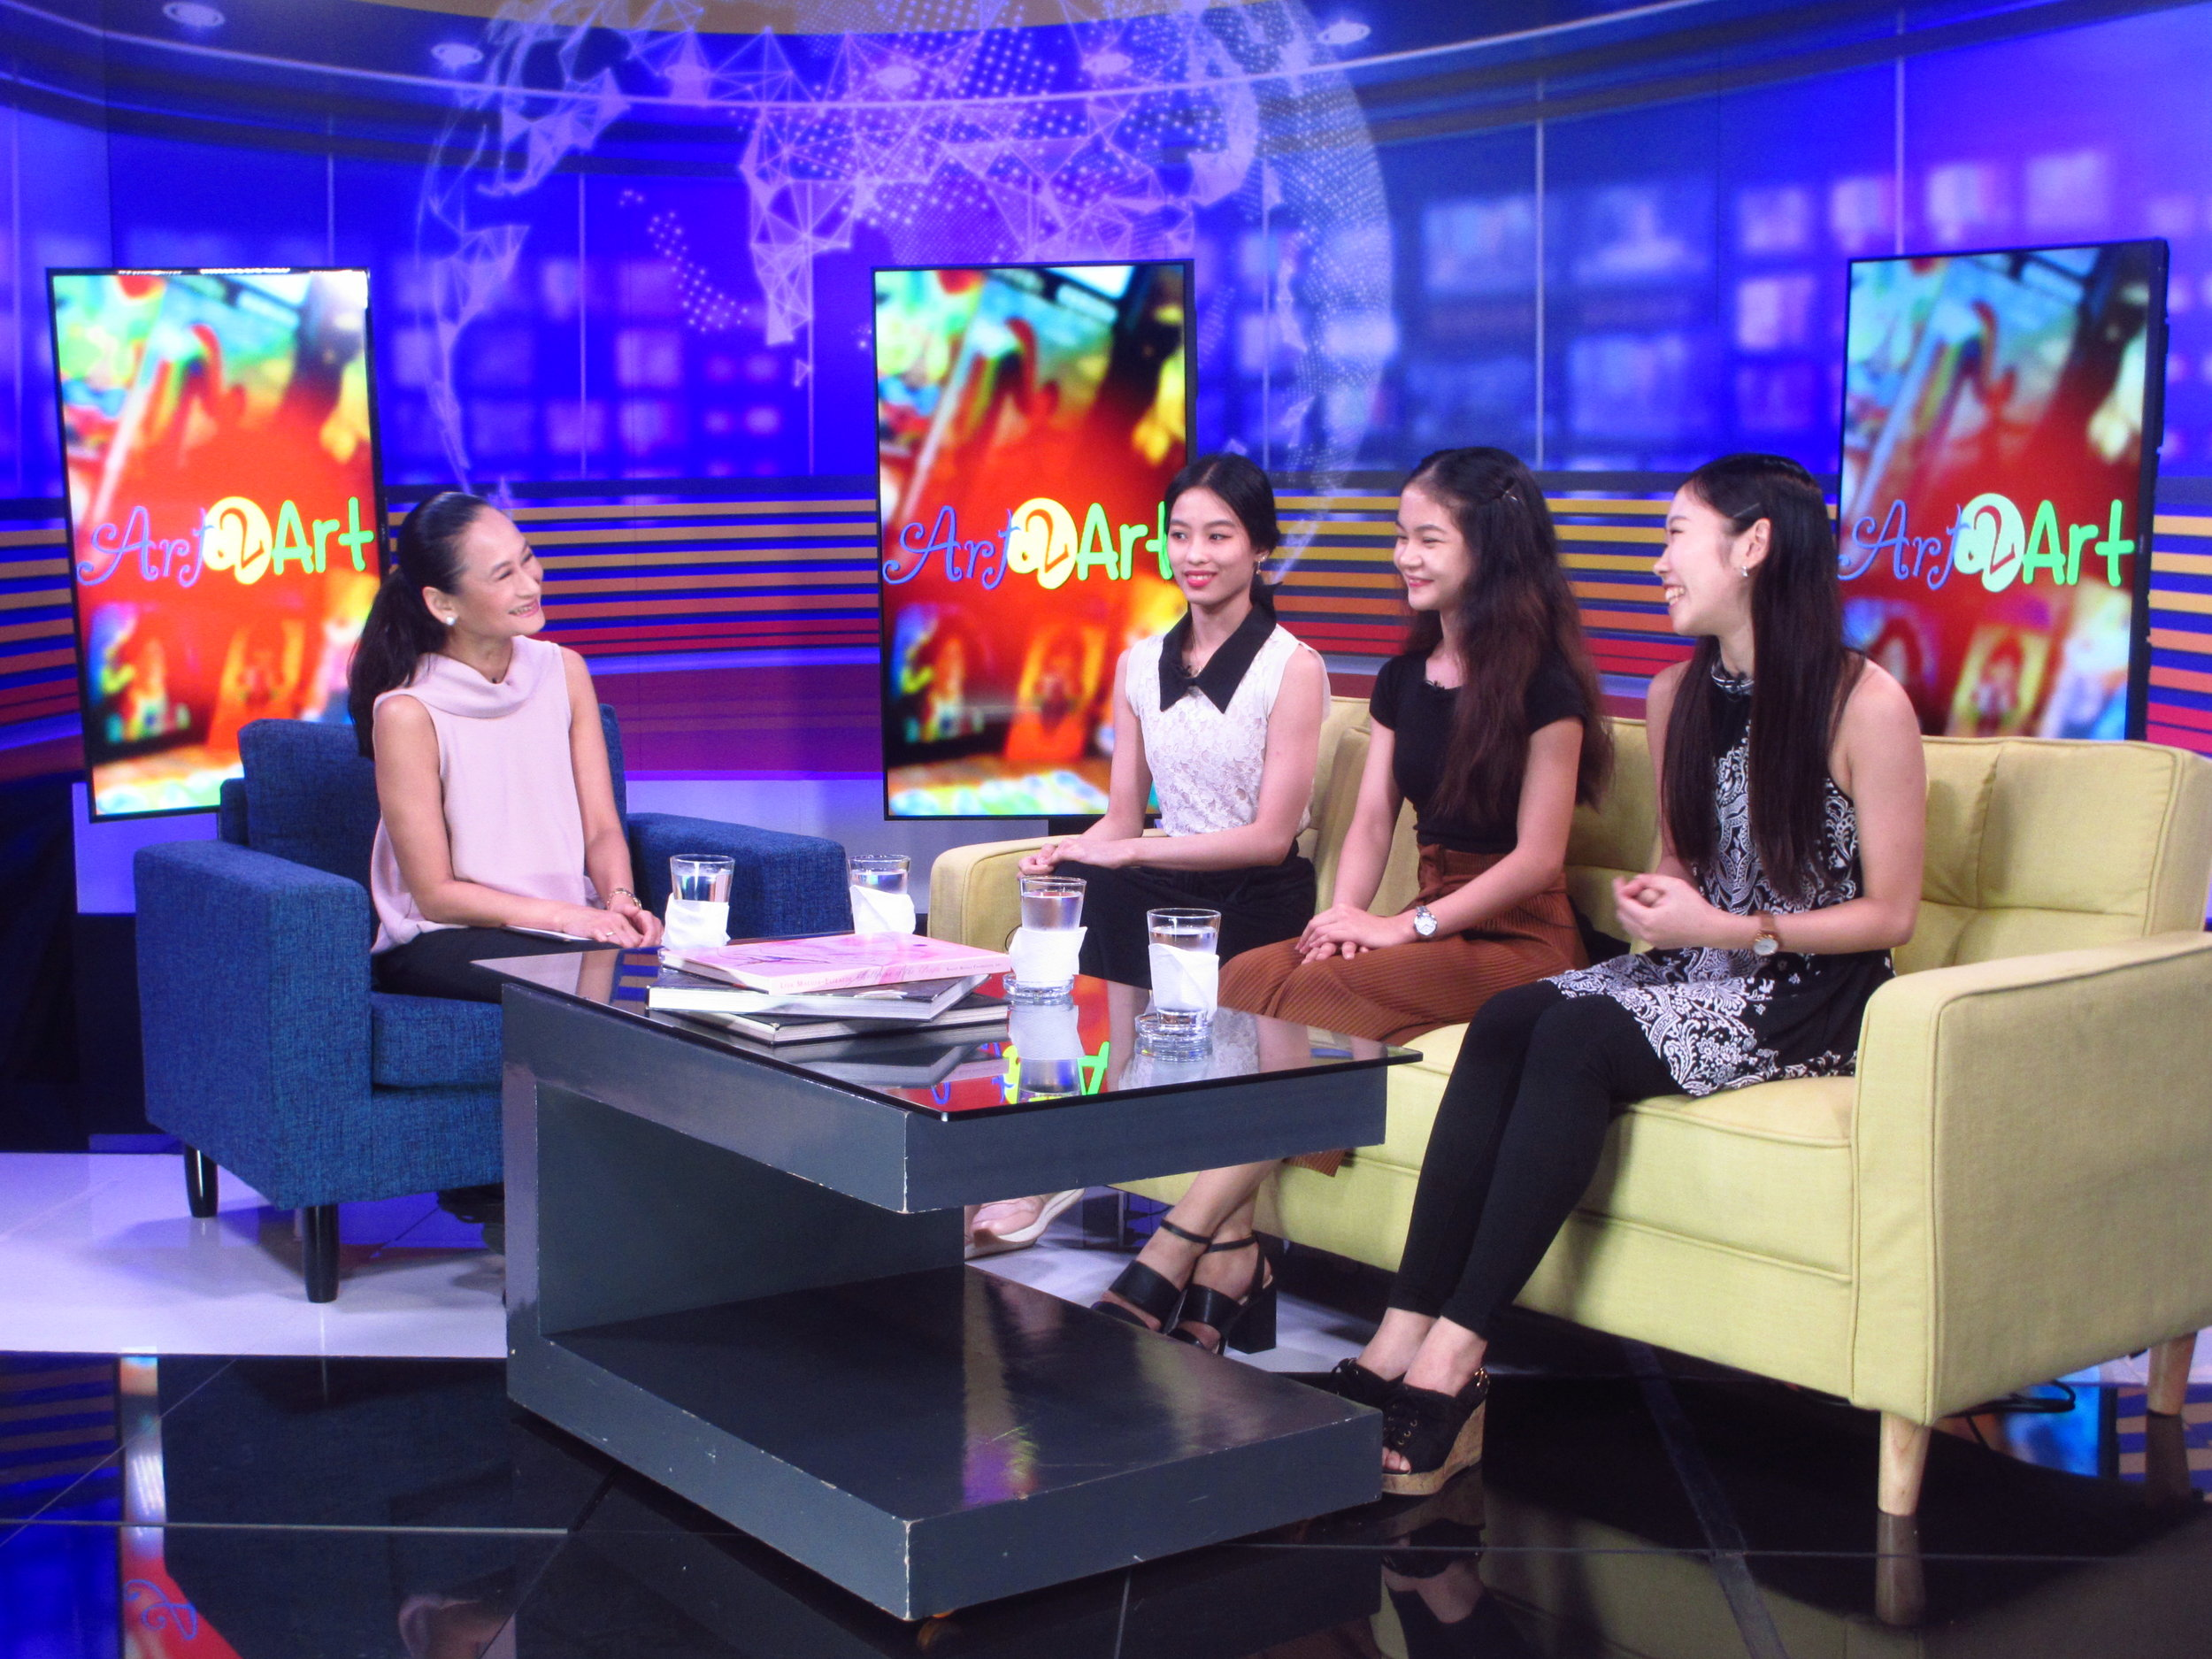 Ballet Manila artistic director Lisa Macuja-Elizalde interviews Joan Emery Sia, Shaira Comeros and Akari Ida in her art advocacy program,  Art 2 Art.  The three ballerinas will take on the lead role in her choreography of Snow White. The episode will air on August 25 at DZRH. Photo by Susan A. De Guzman